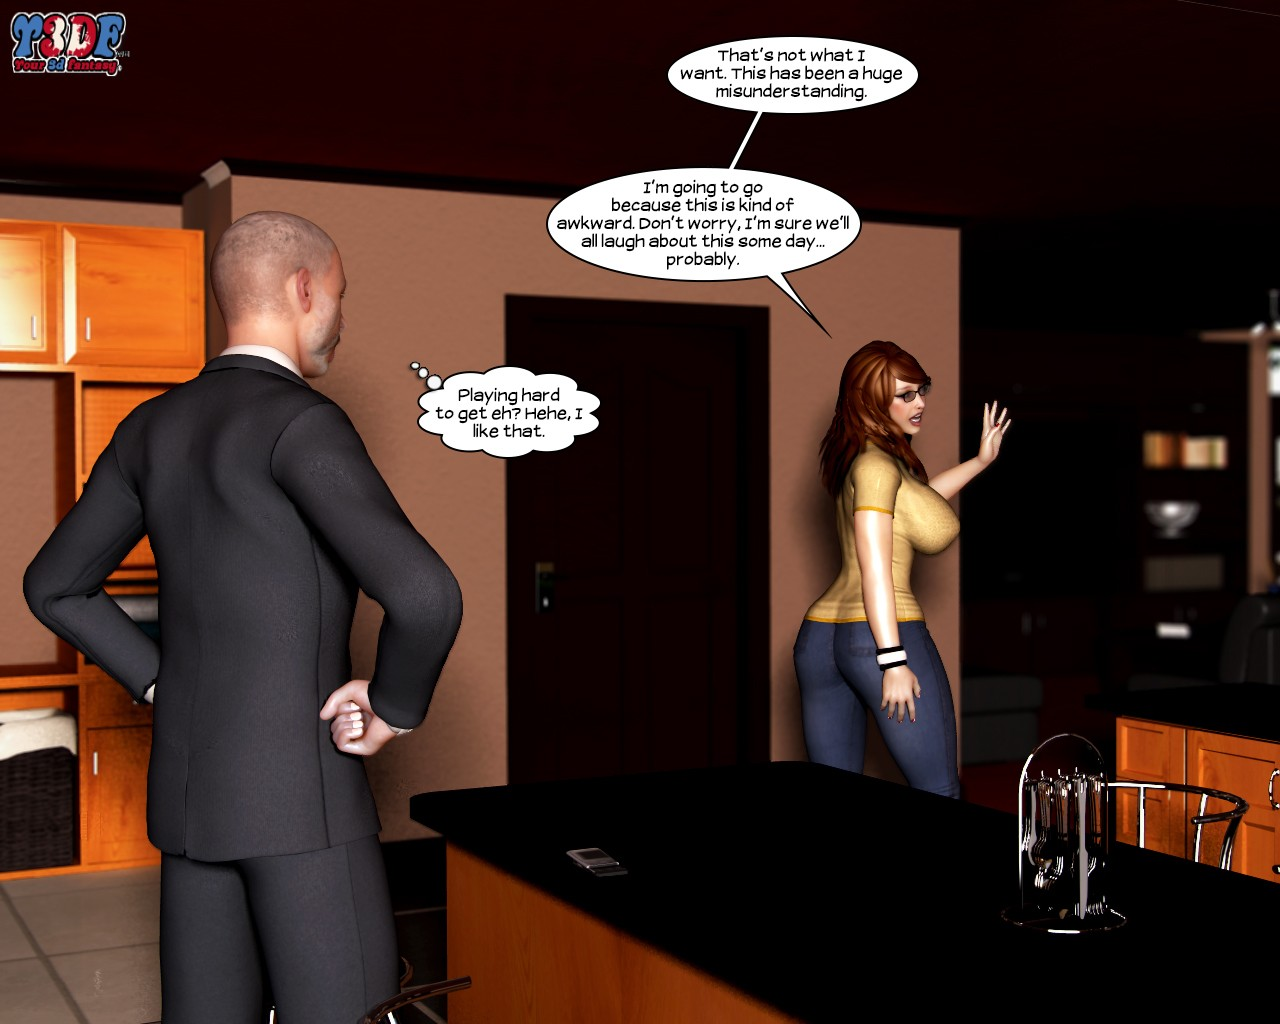 76 4 - Busted & Caught. Part 1.